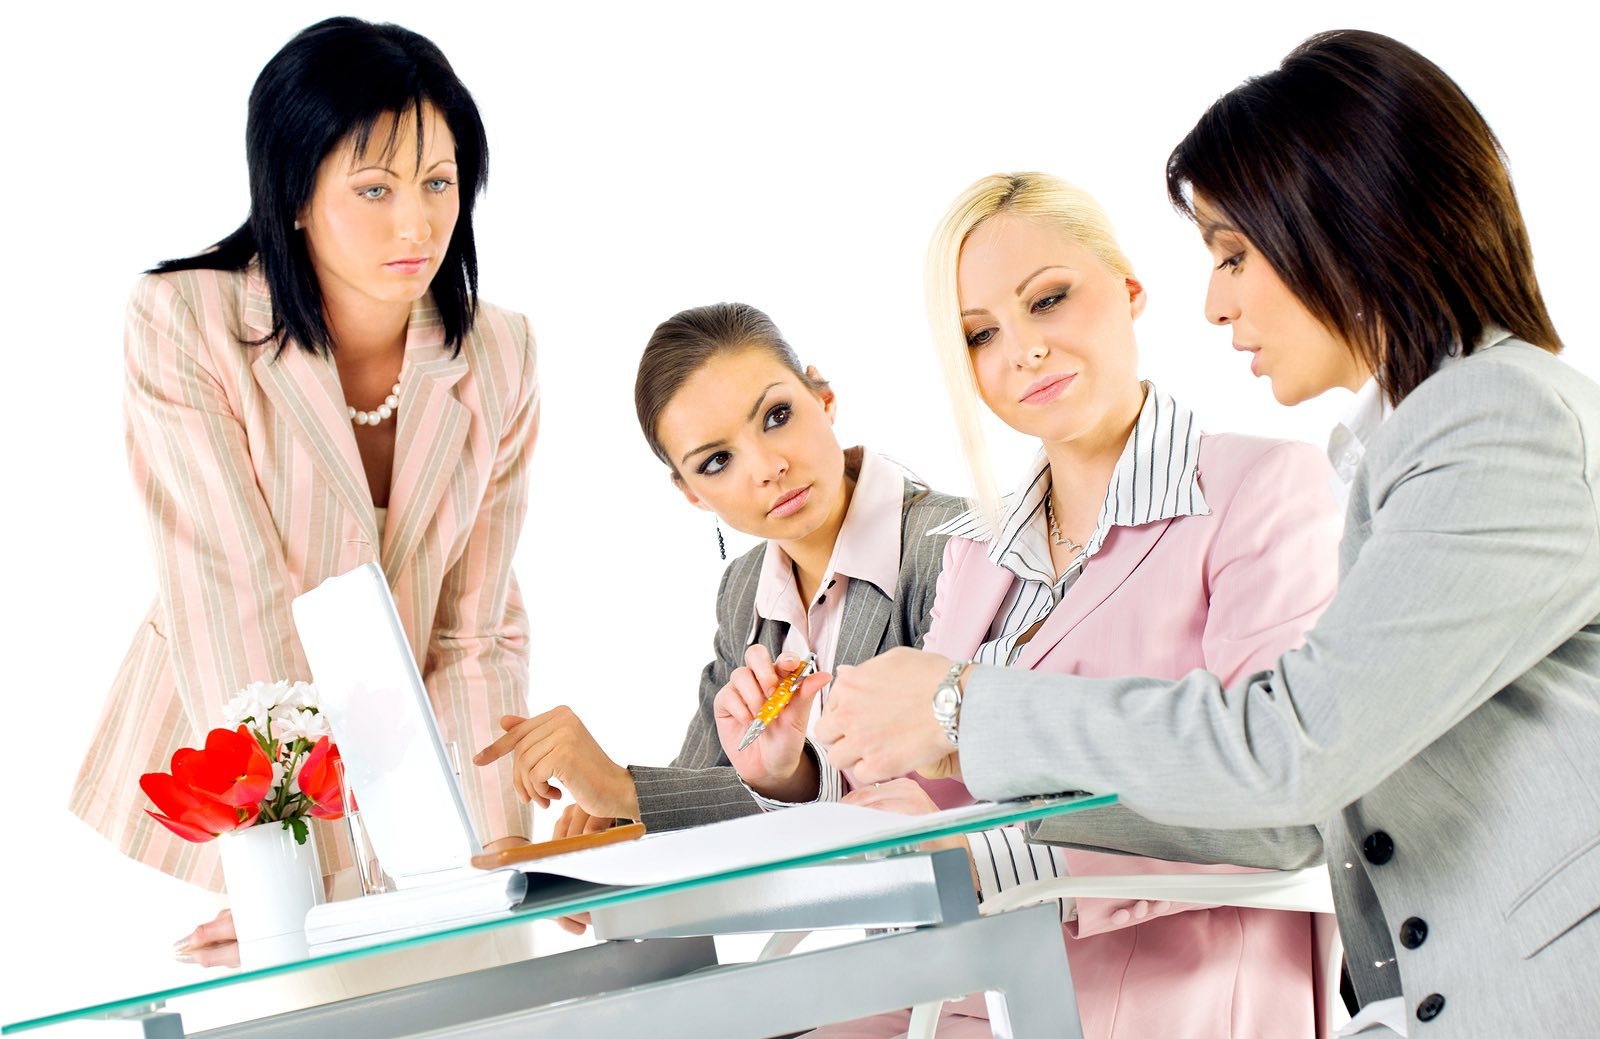 Business women discussing